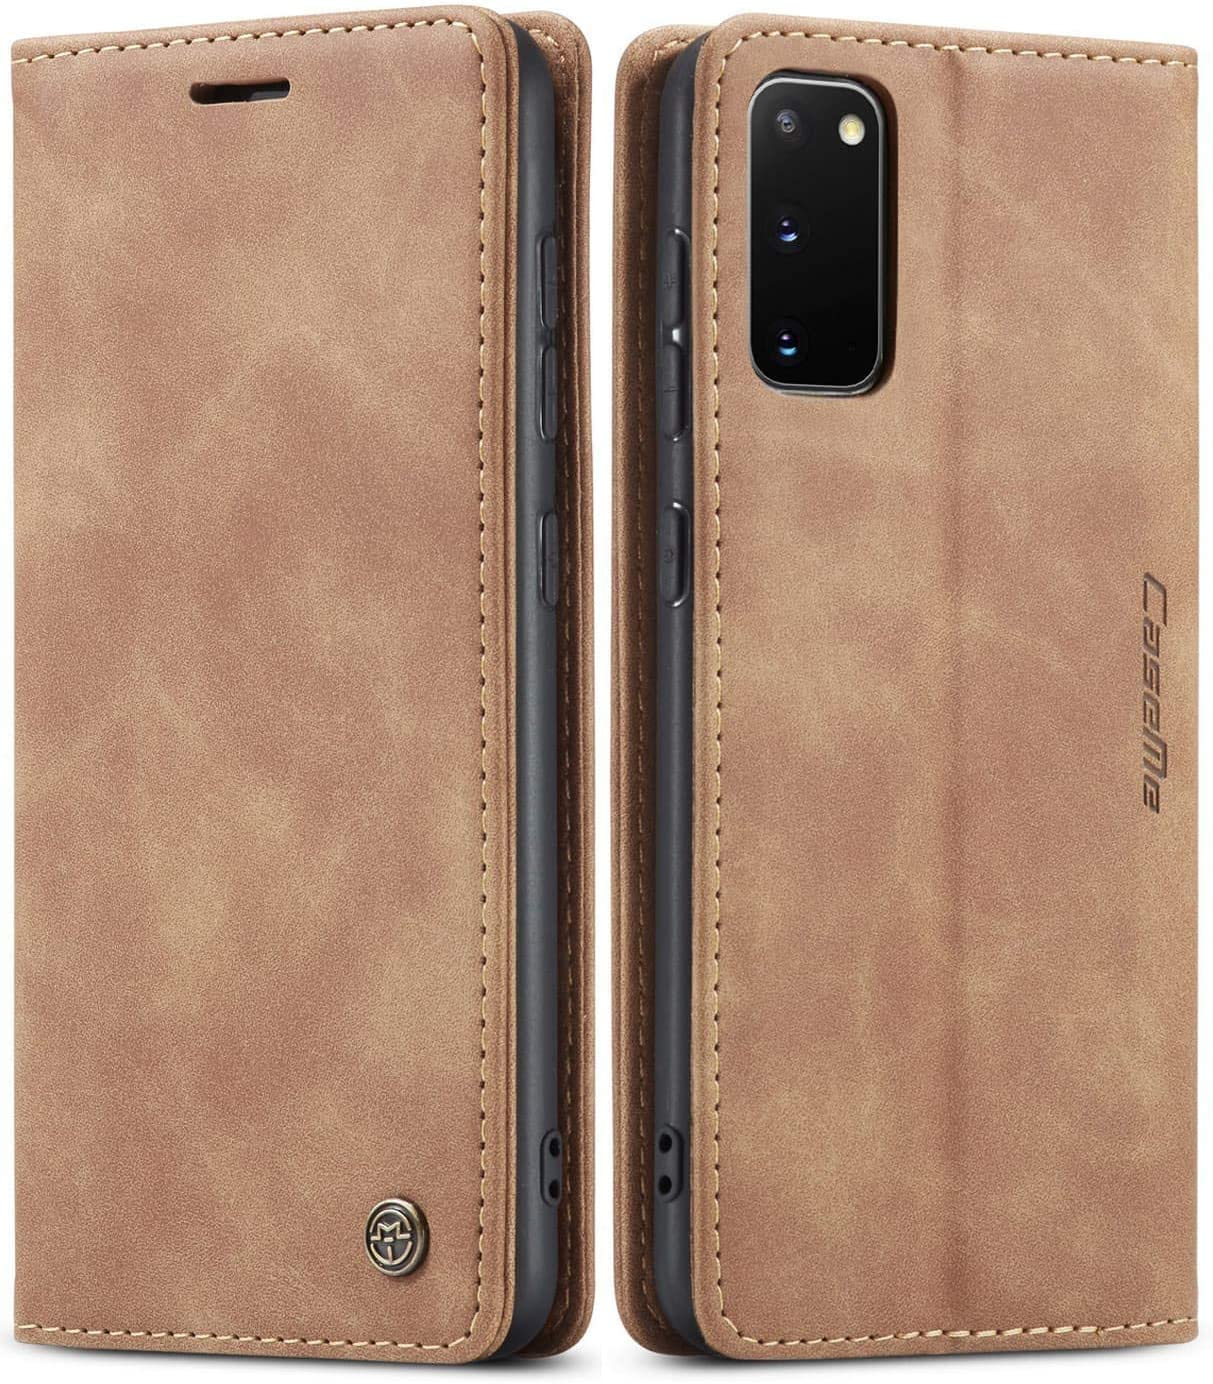 SINIANL Samsung Galaxy S20 Case, Galaxy S20 Leather Case, Vintage Wallet Case Book Folding Flip Case with Kickstand Card Holders Slots Magnetic Closure Protective Cover for Galaxy S20 Brown